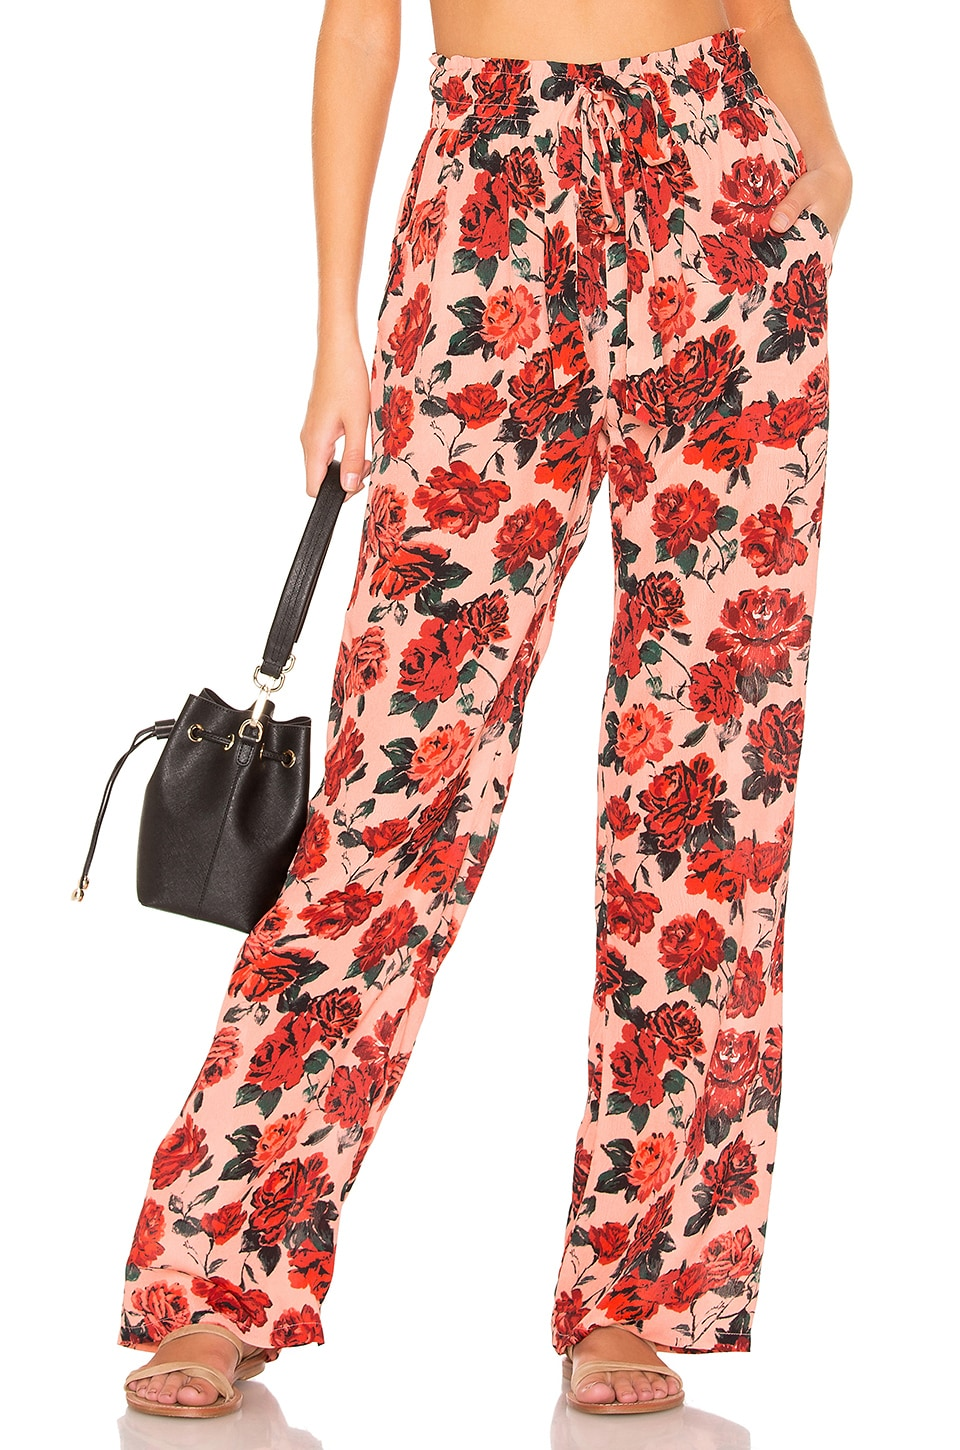 BEACH RIOT Harlow Pant in Rose